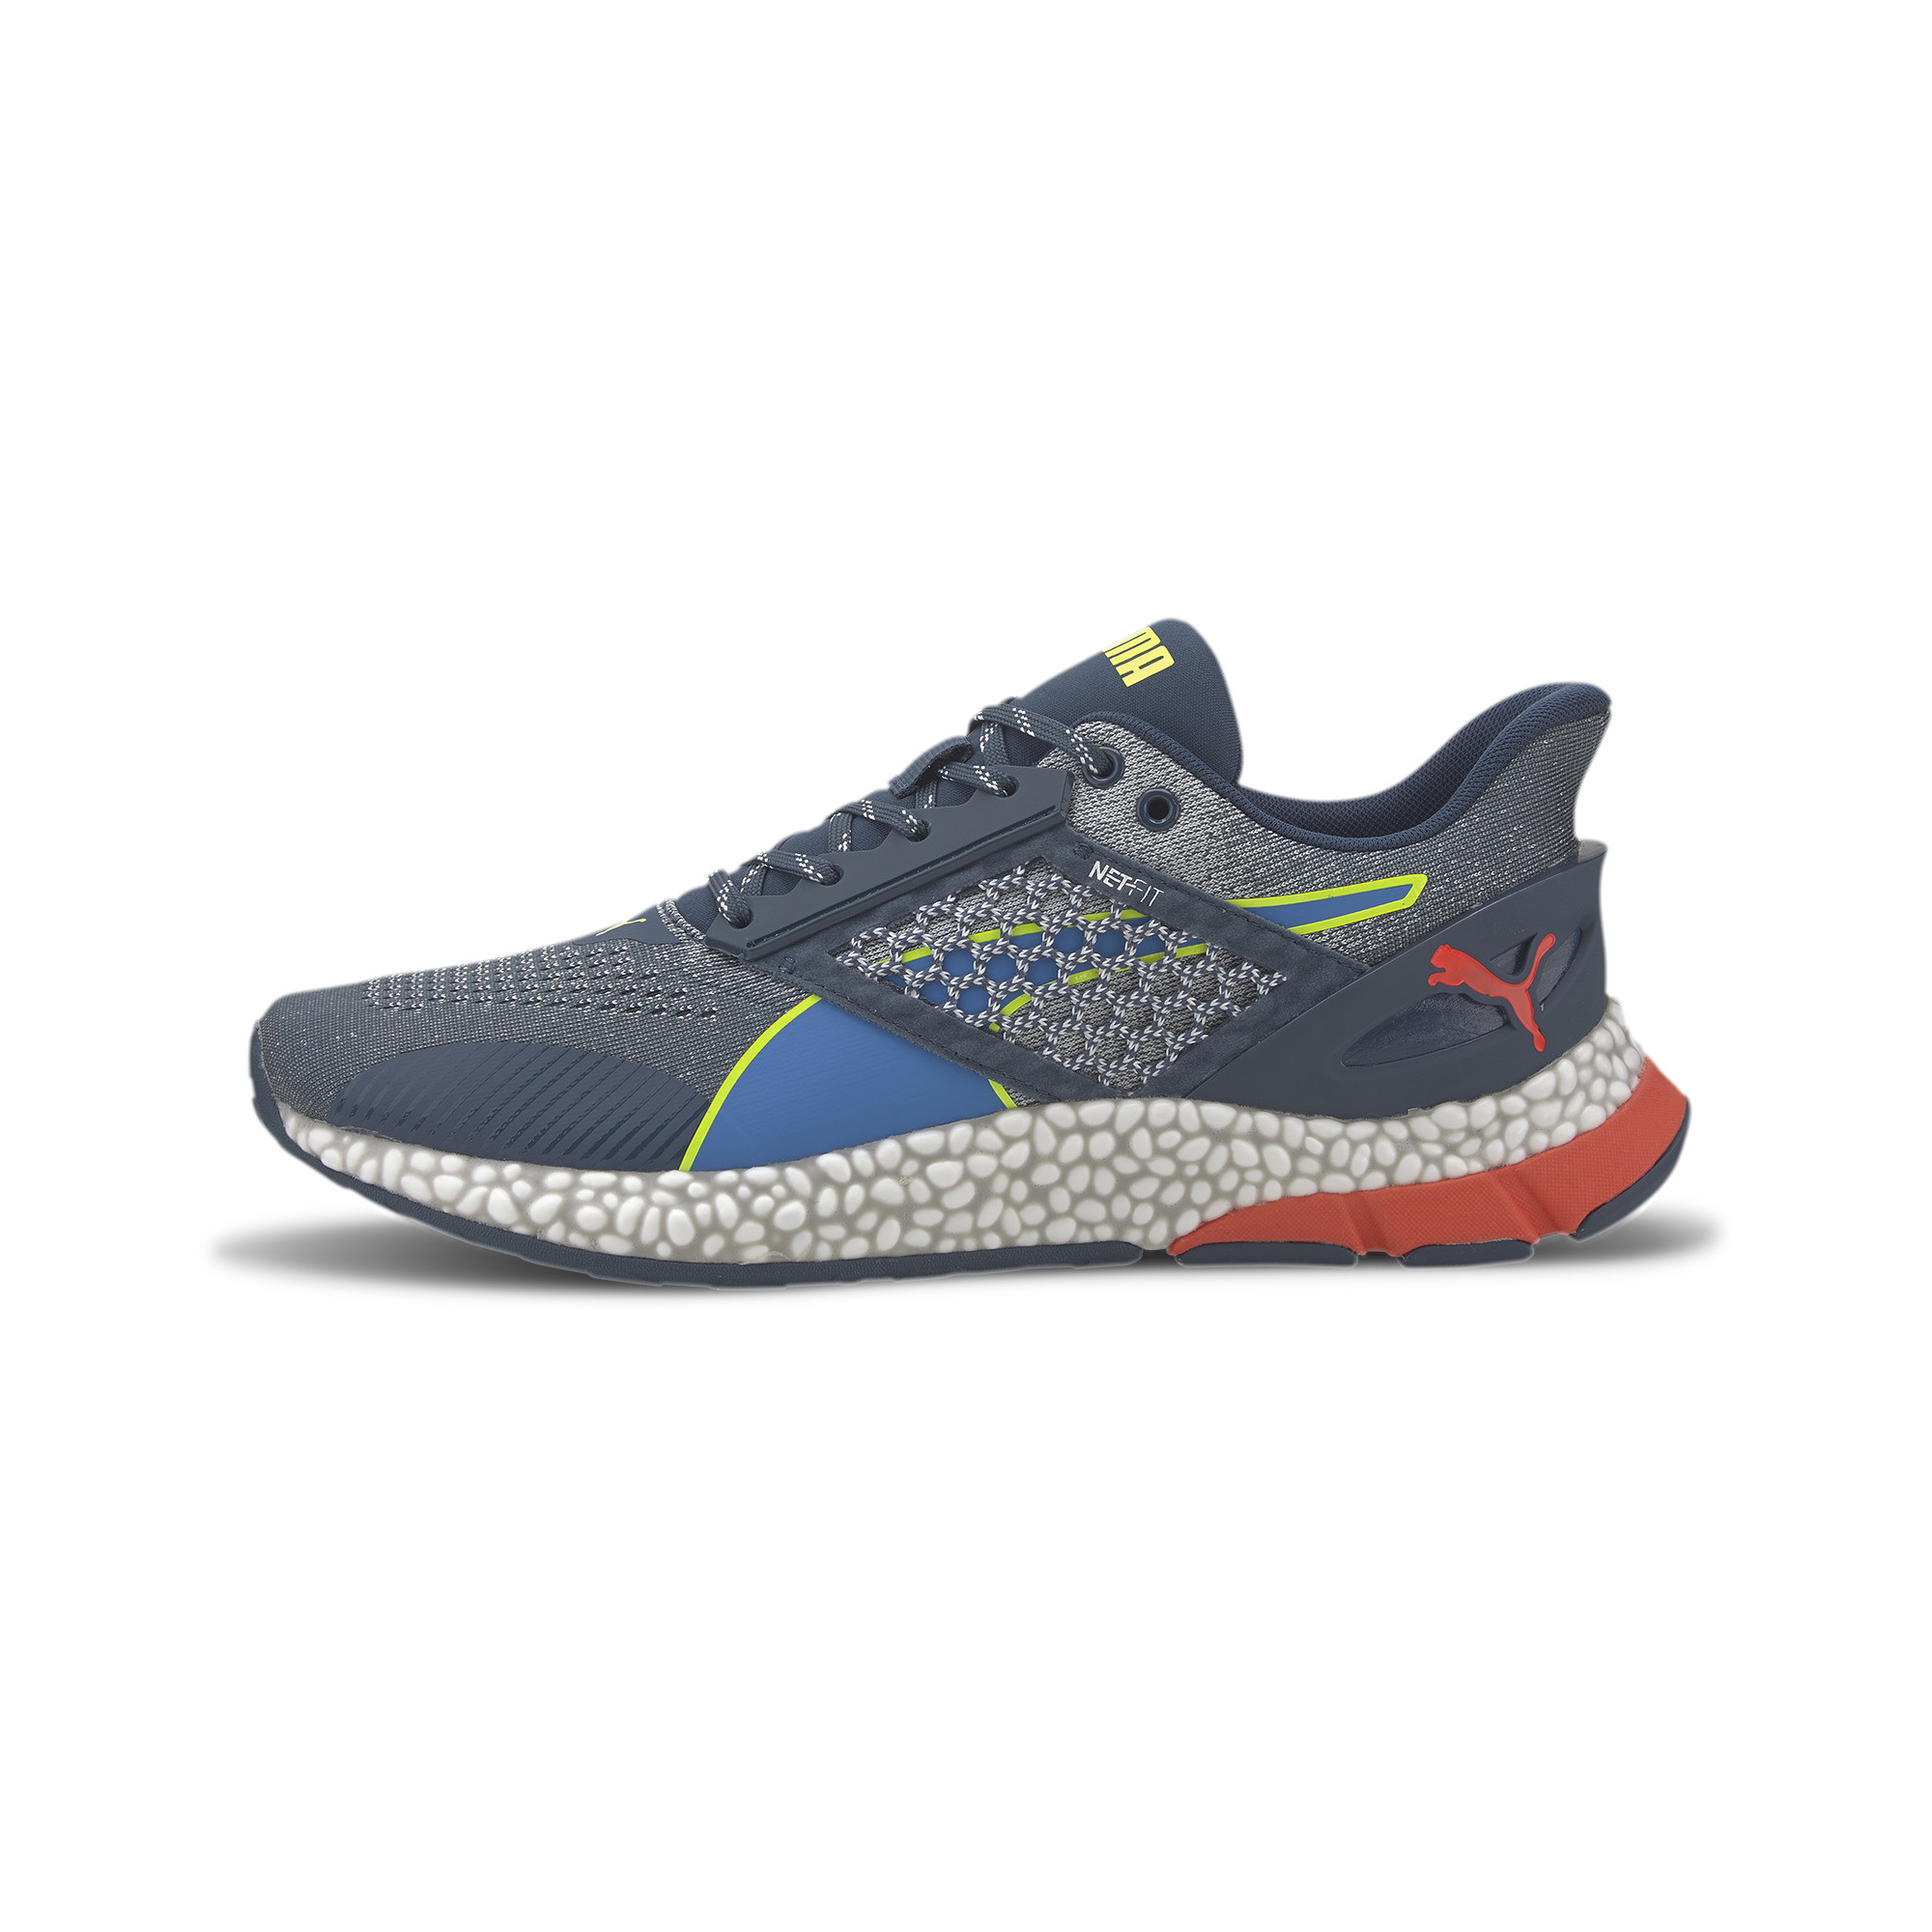 PUMA-Men-039-s-HYBRID-Astro-Running-Shoes thumbnail 23